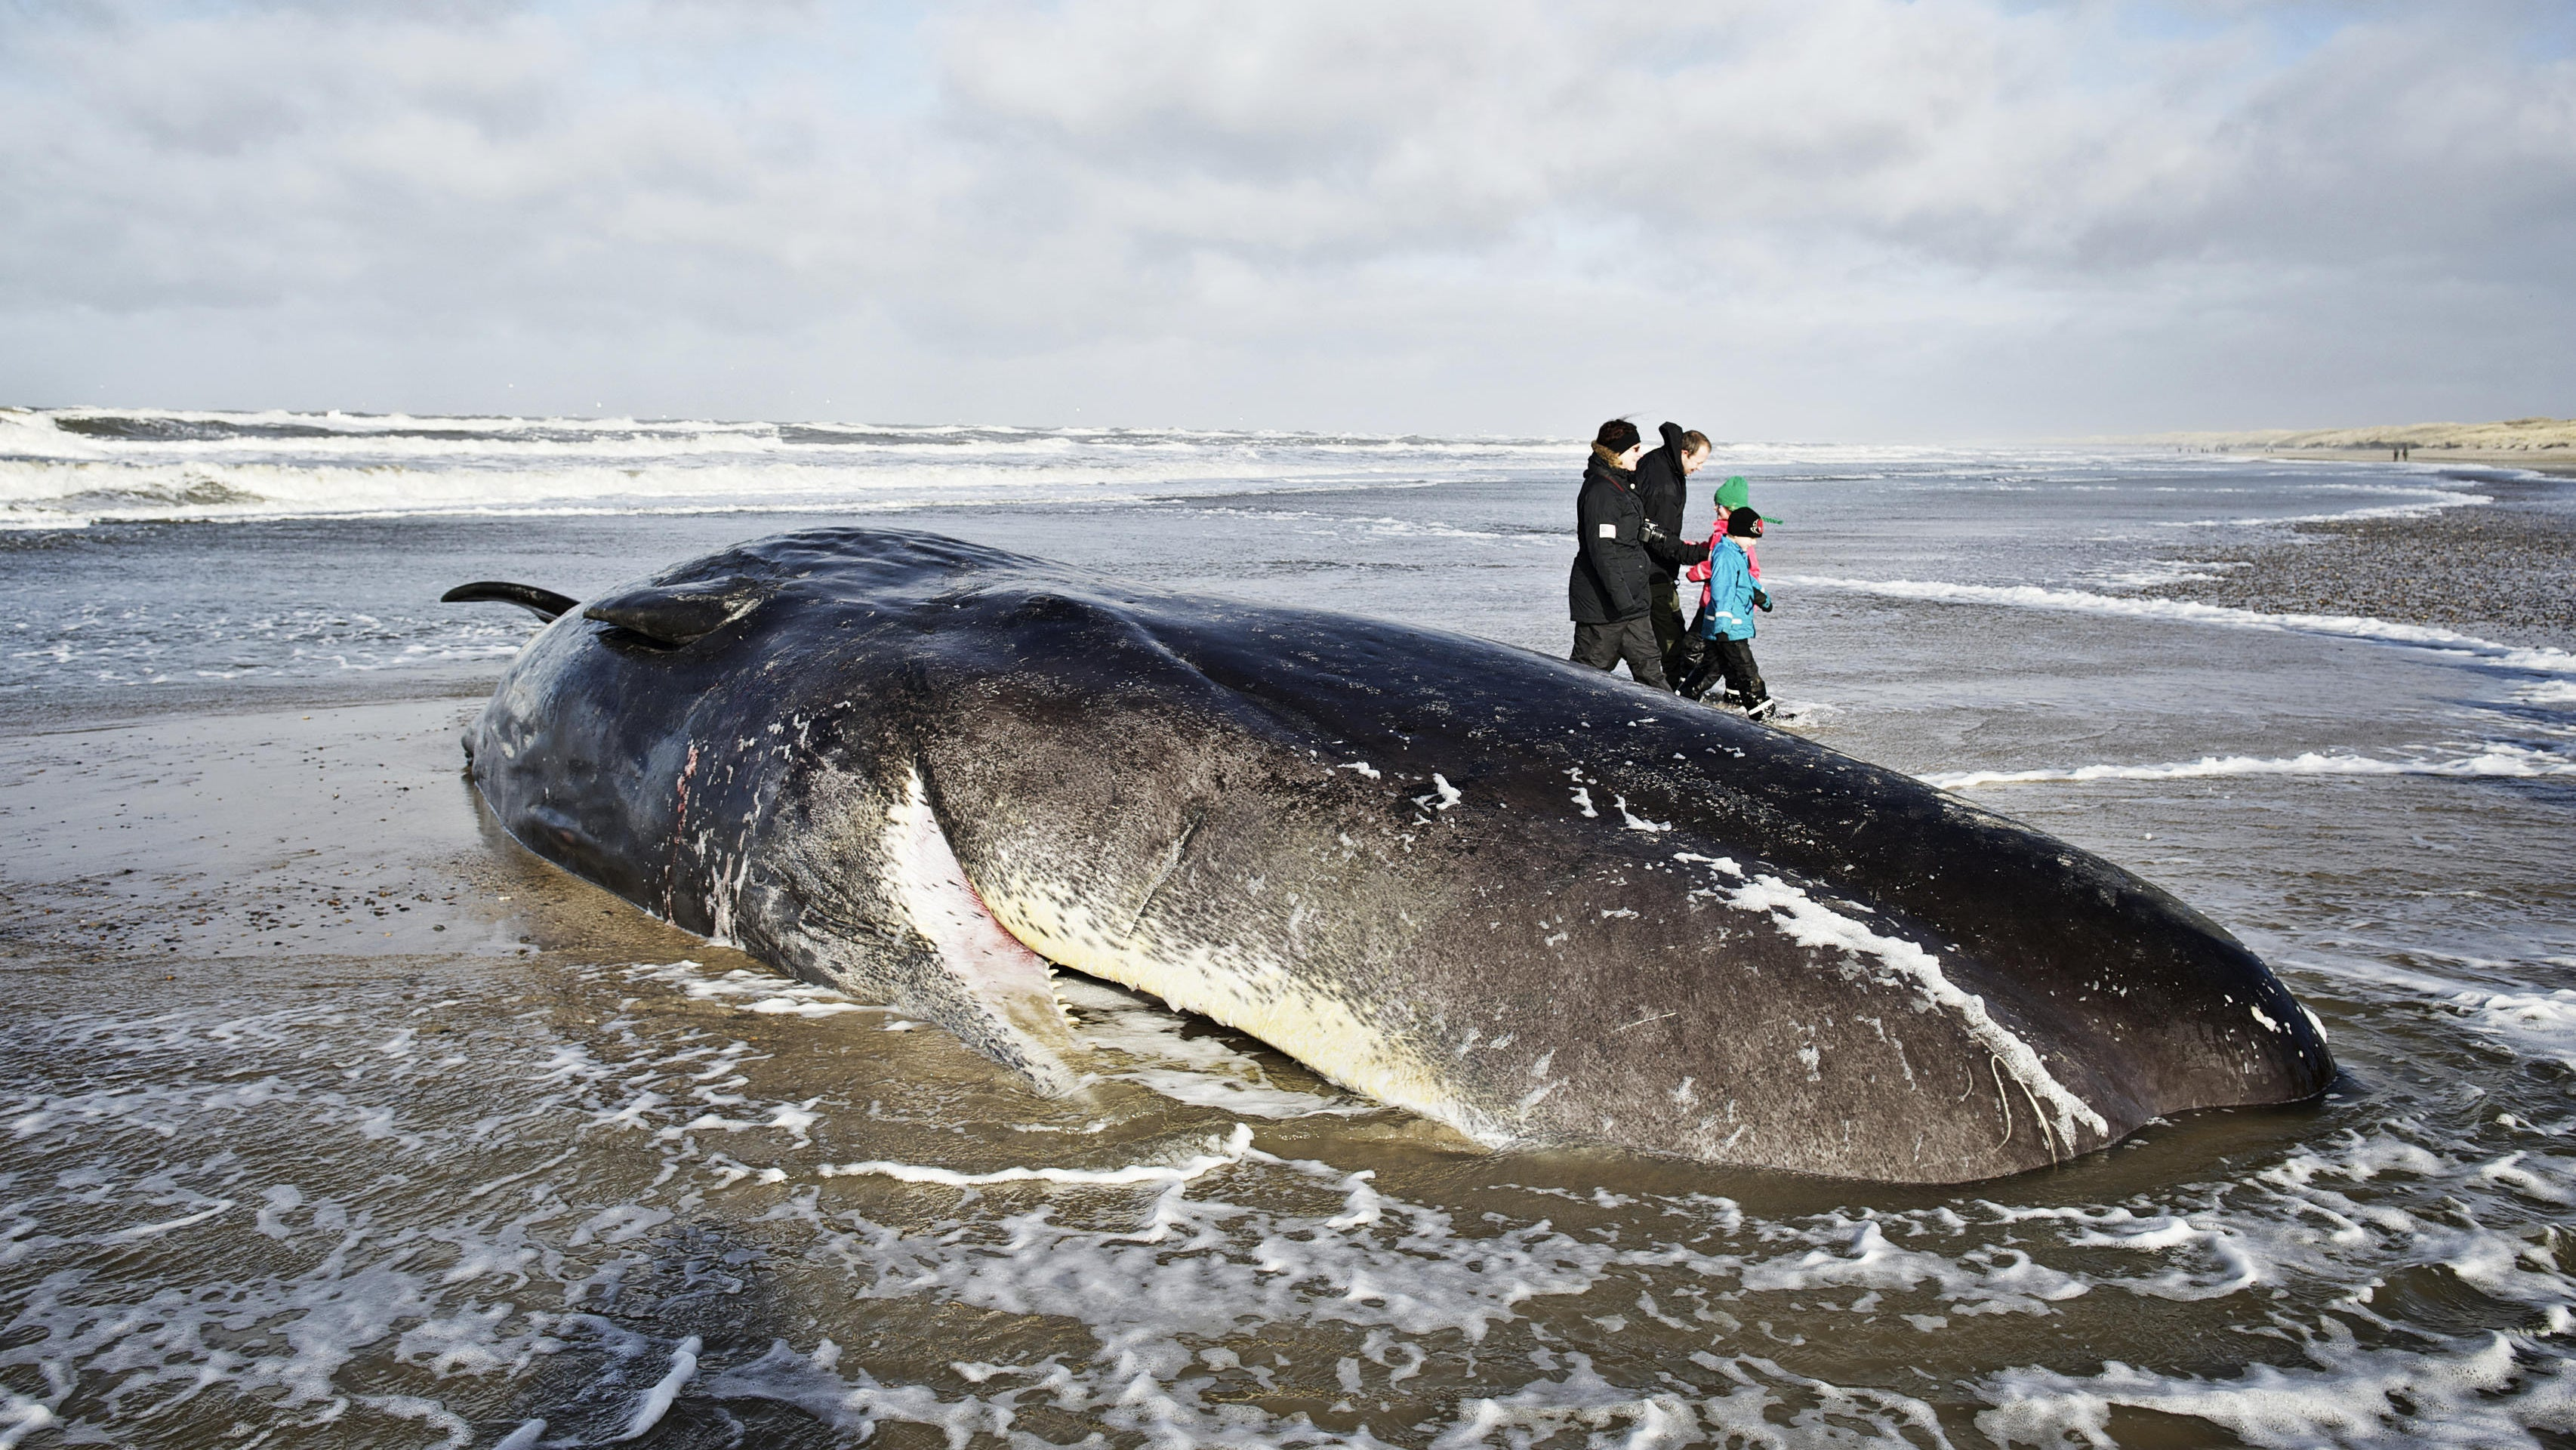 Biologists Have A Cosmic Explanation For Last Year's Mysterious Sperm Whale Strandings